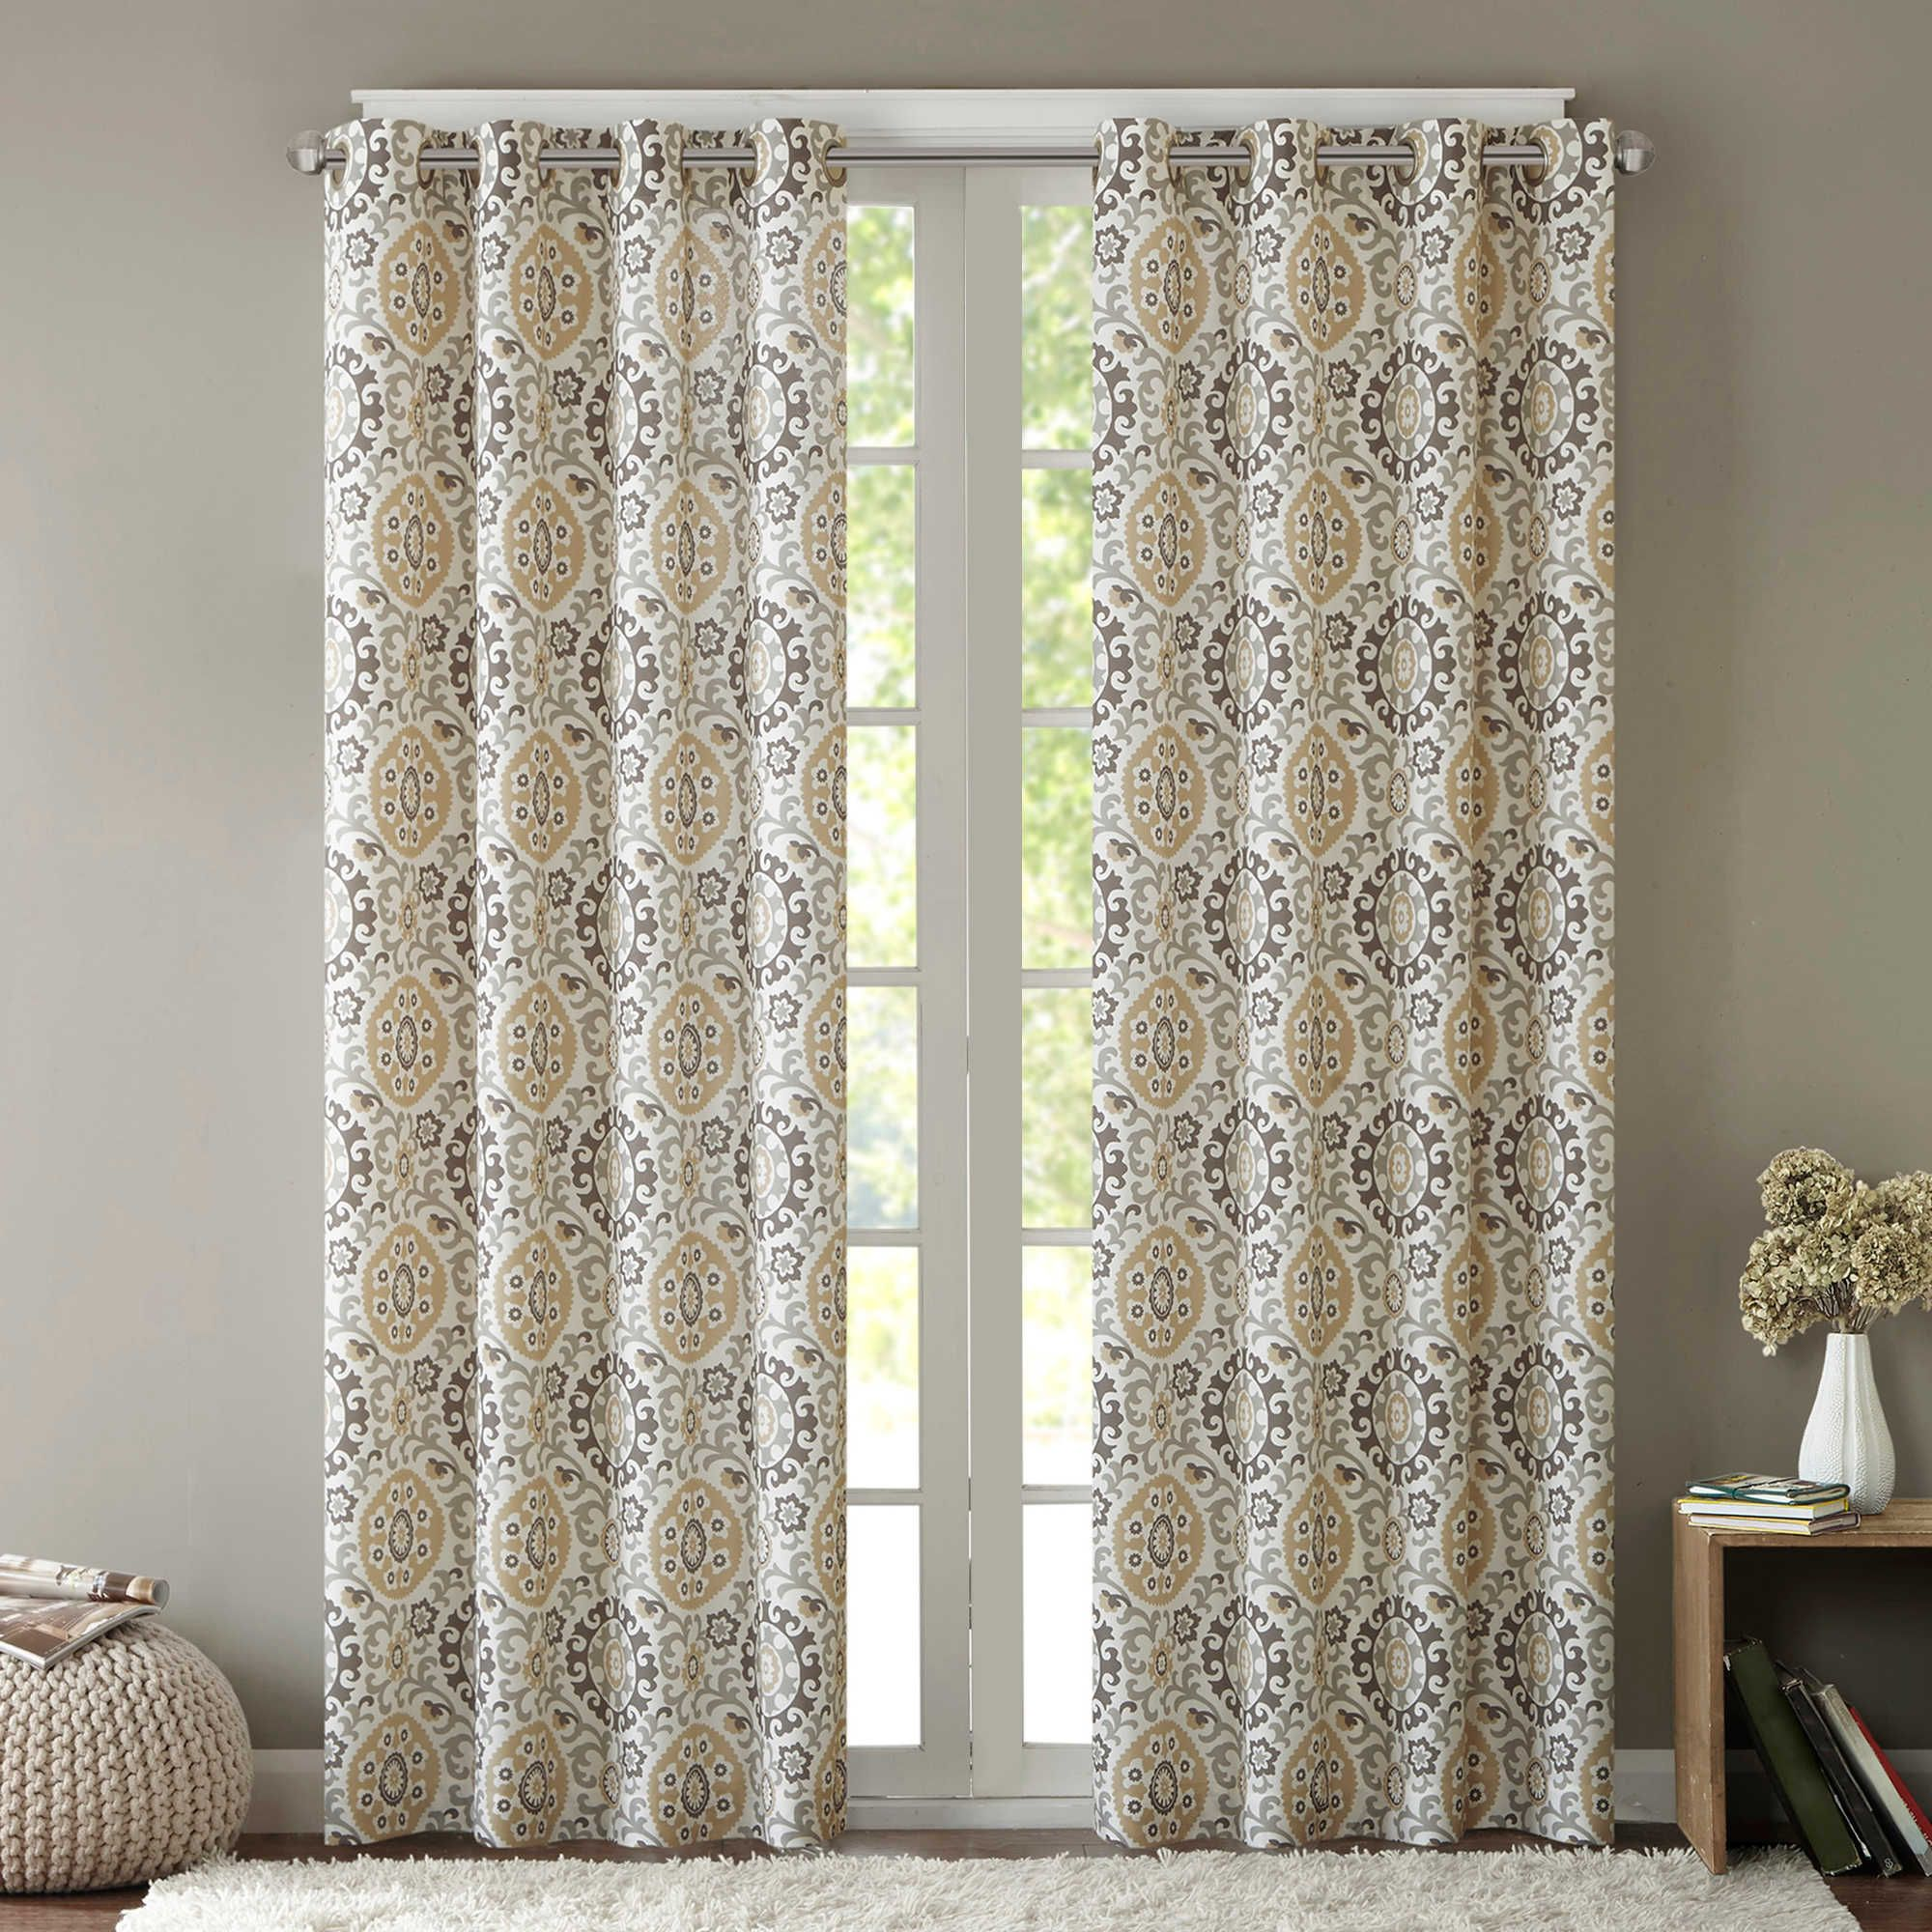 Intelligent Design Seville 63 Inch Grommet Top Window Curtain Panel In Taupe